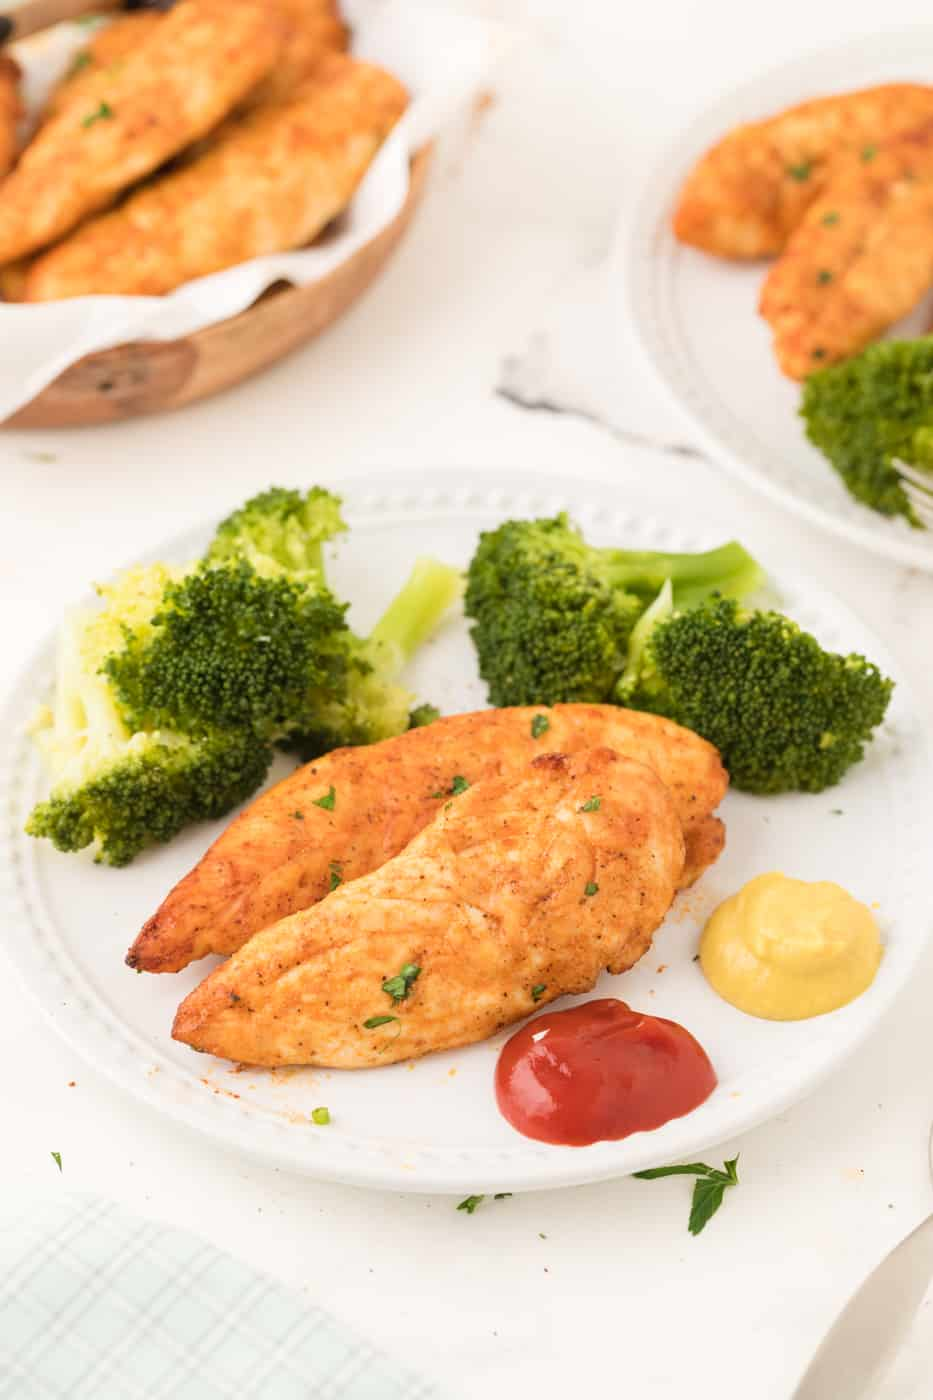 A plate of chicken tenders served with broccoli